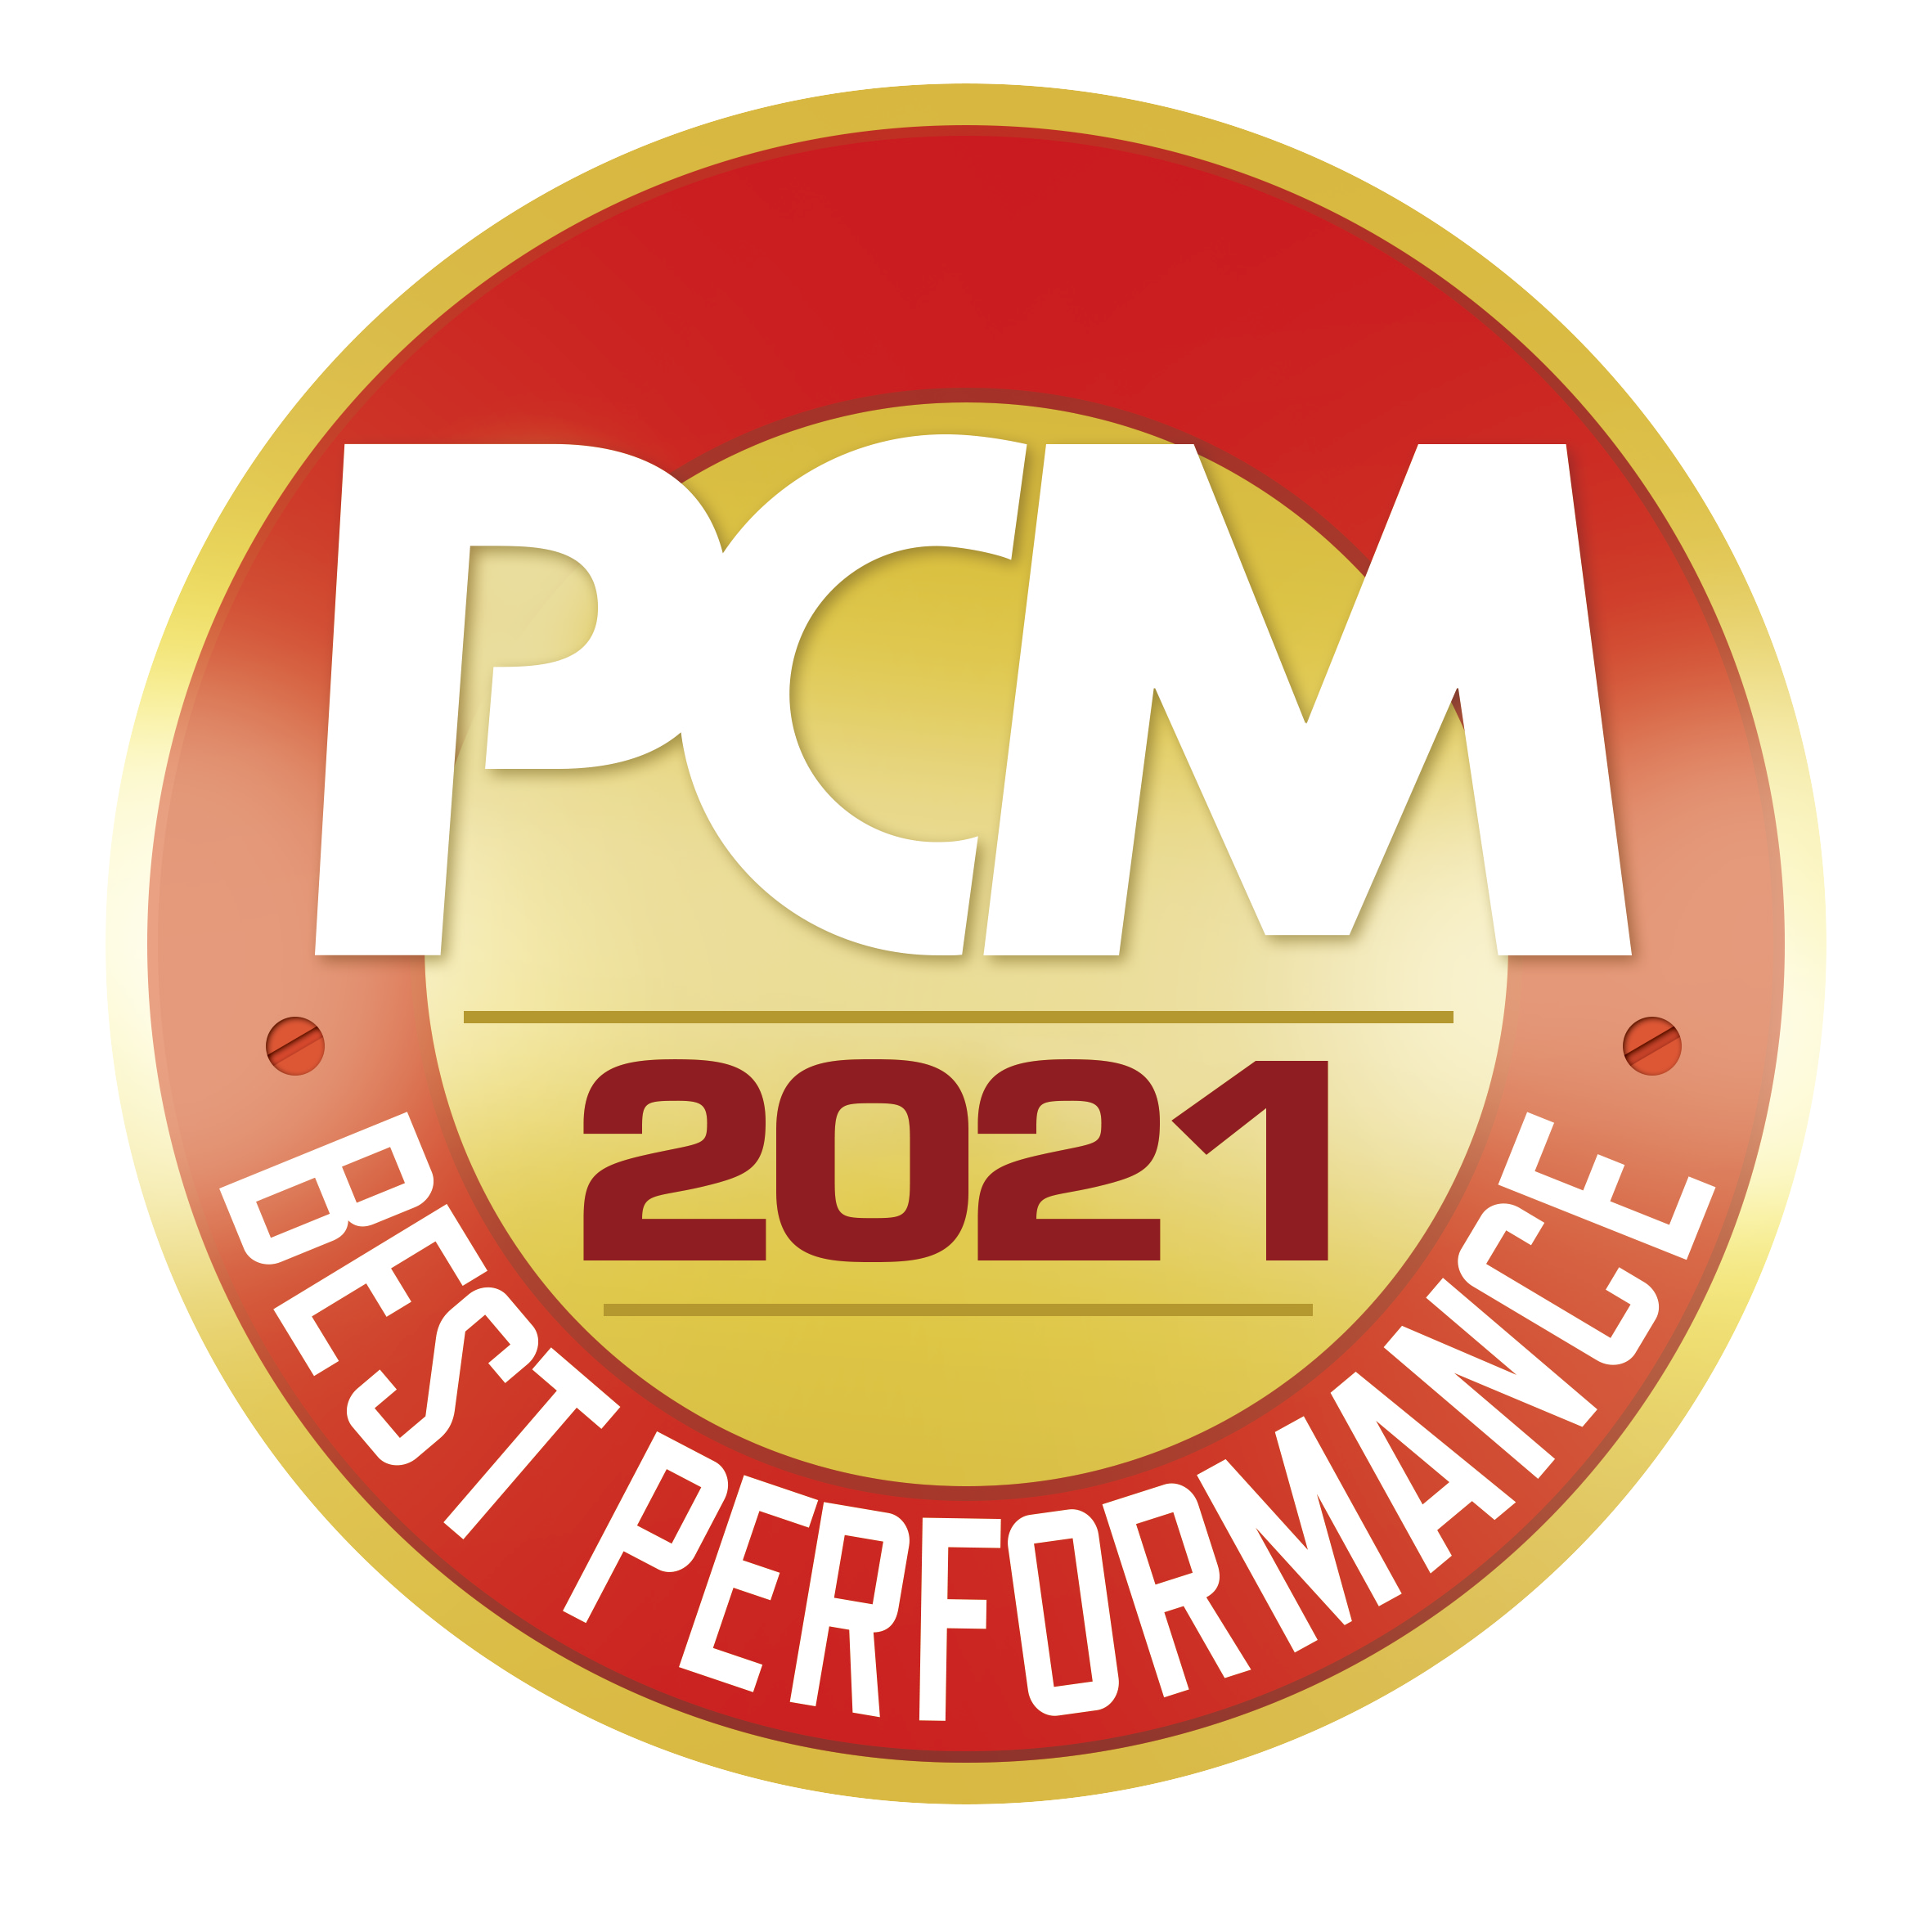 PCM Best Performance 2021